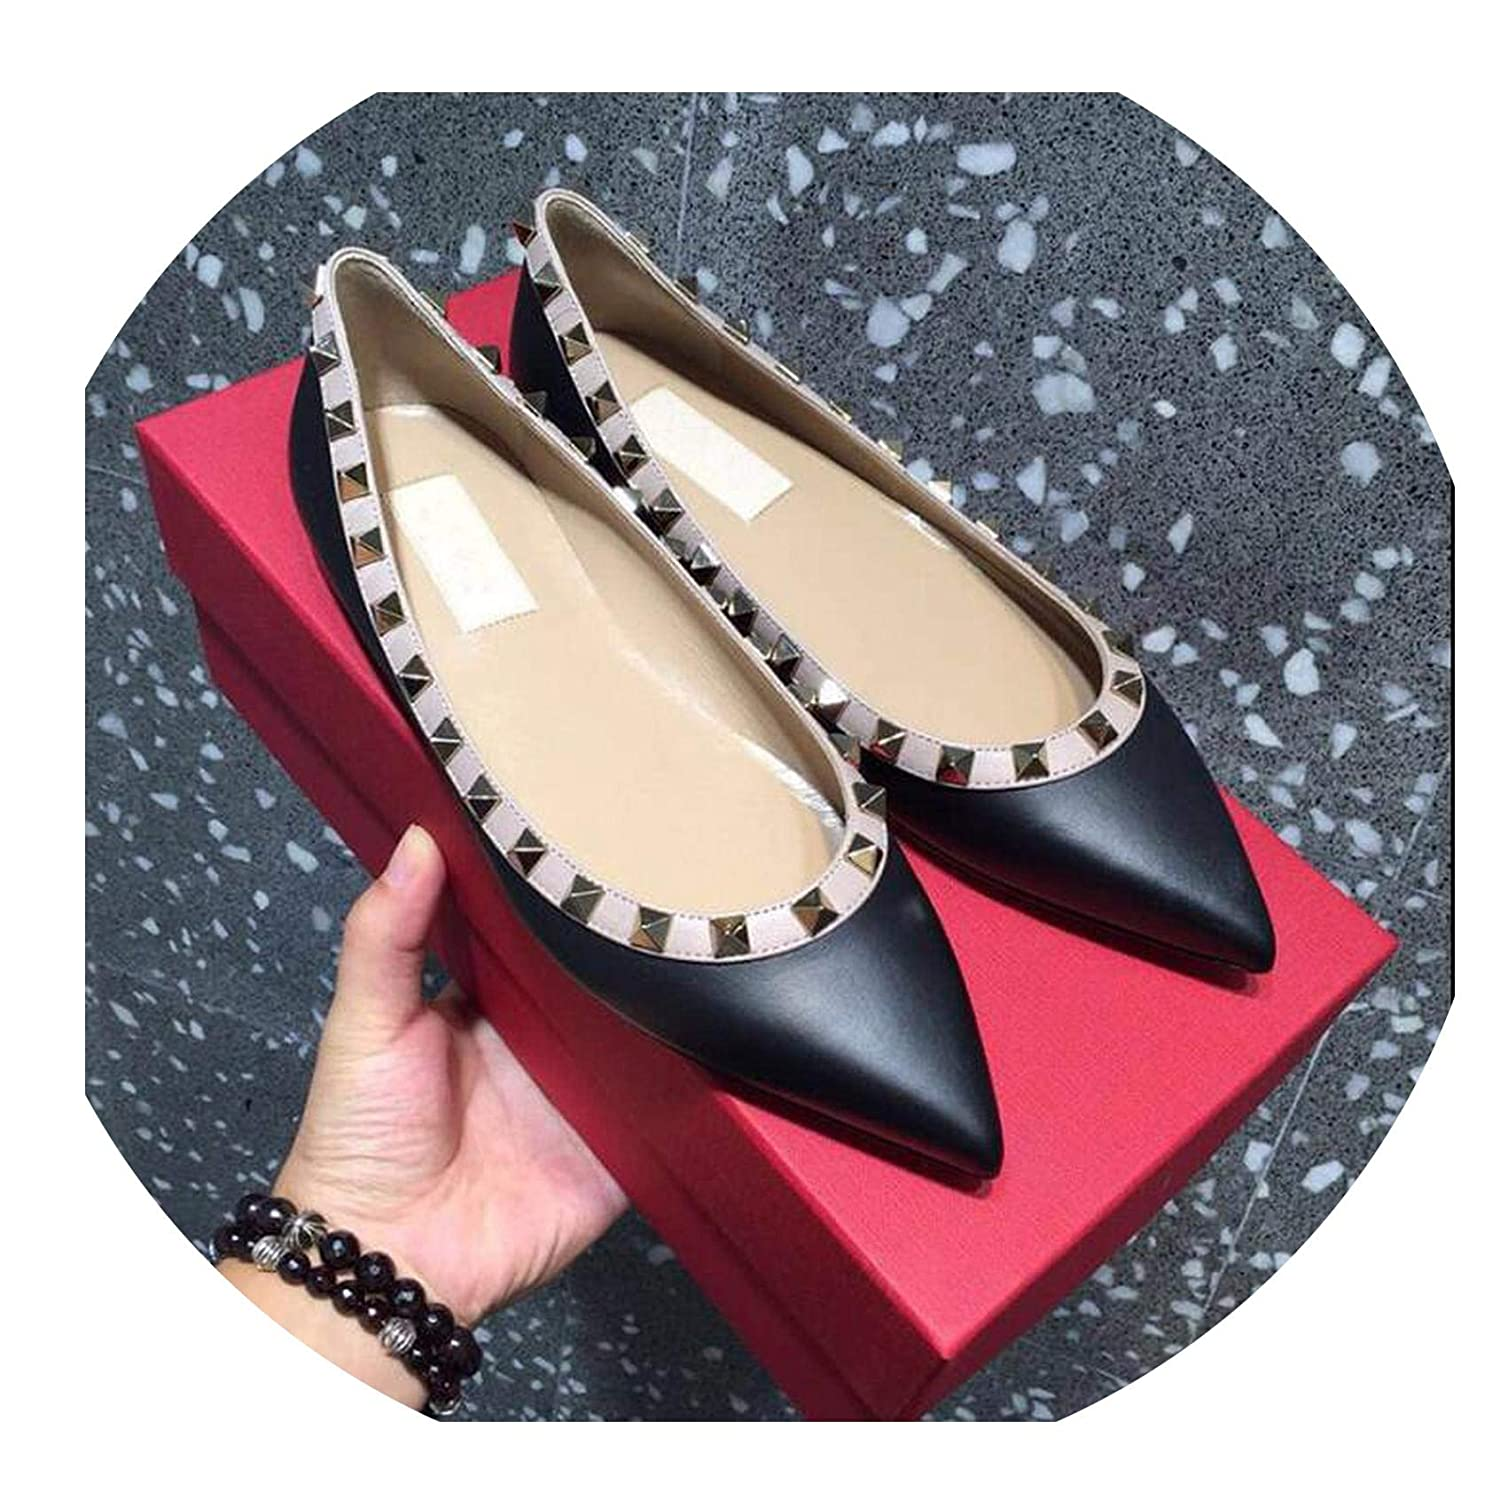 With logo FAT BABY Women's shoes Rhinestone Pointed Flat shoes Women's Rivet Pointed-Toe shoes Crystal Wedding shoes